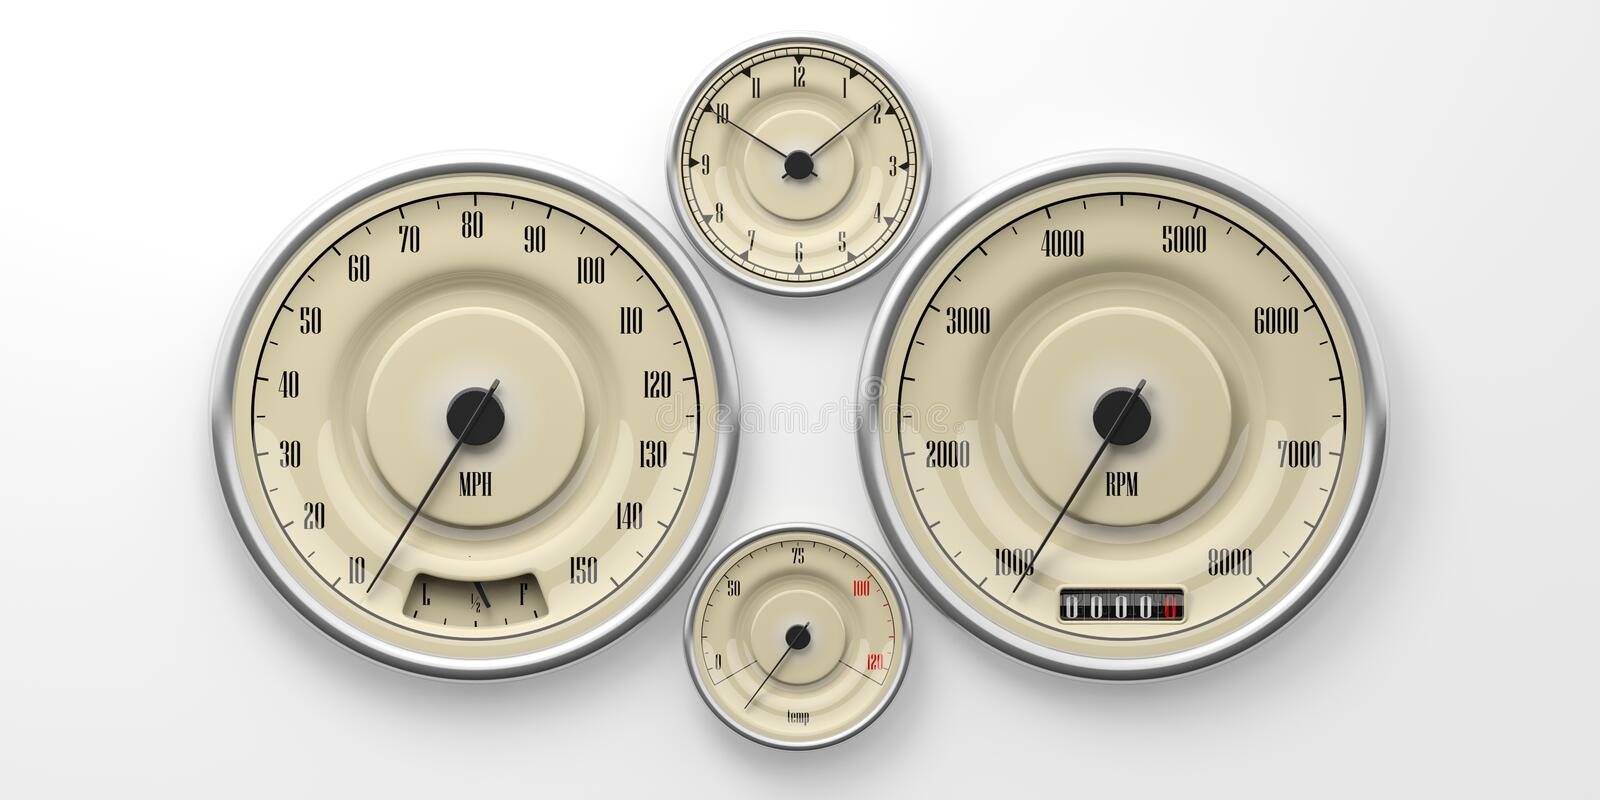 Vintage car gauges isolated on white background. 3d illustration stock images